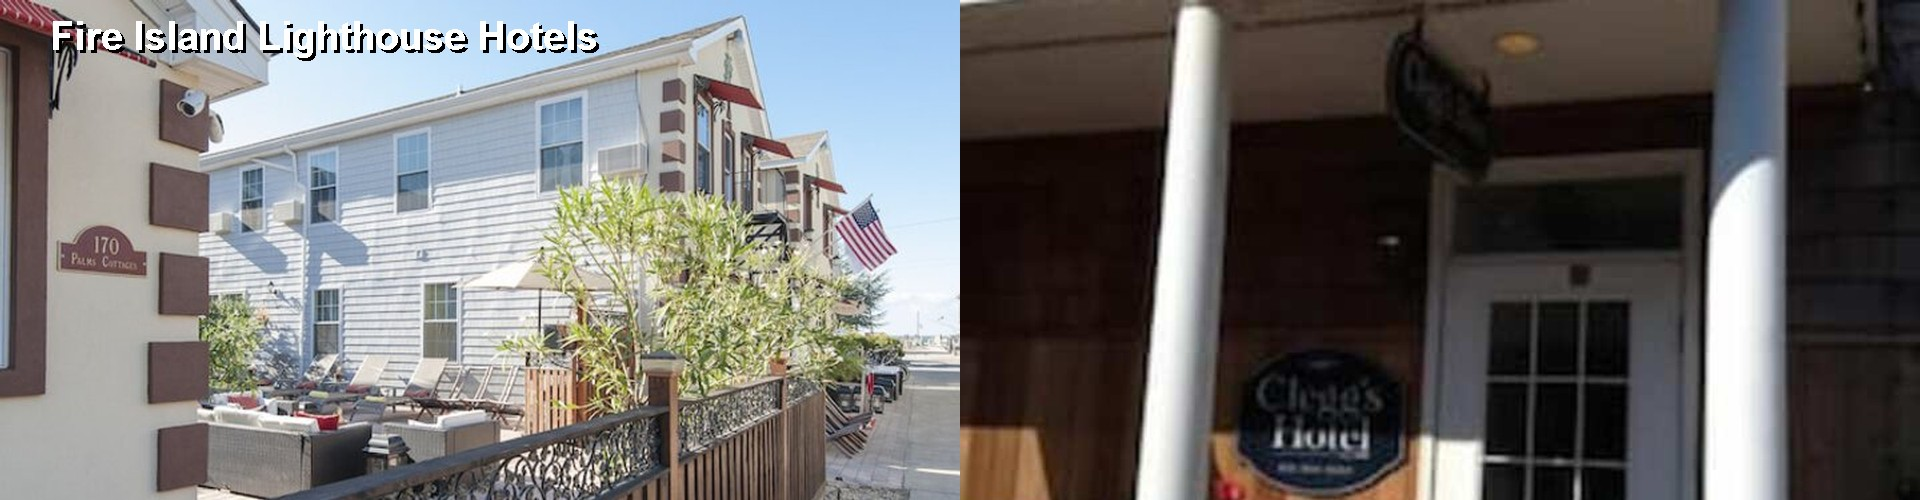 5 Best Hotels near Fire Island Lighthouse